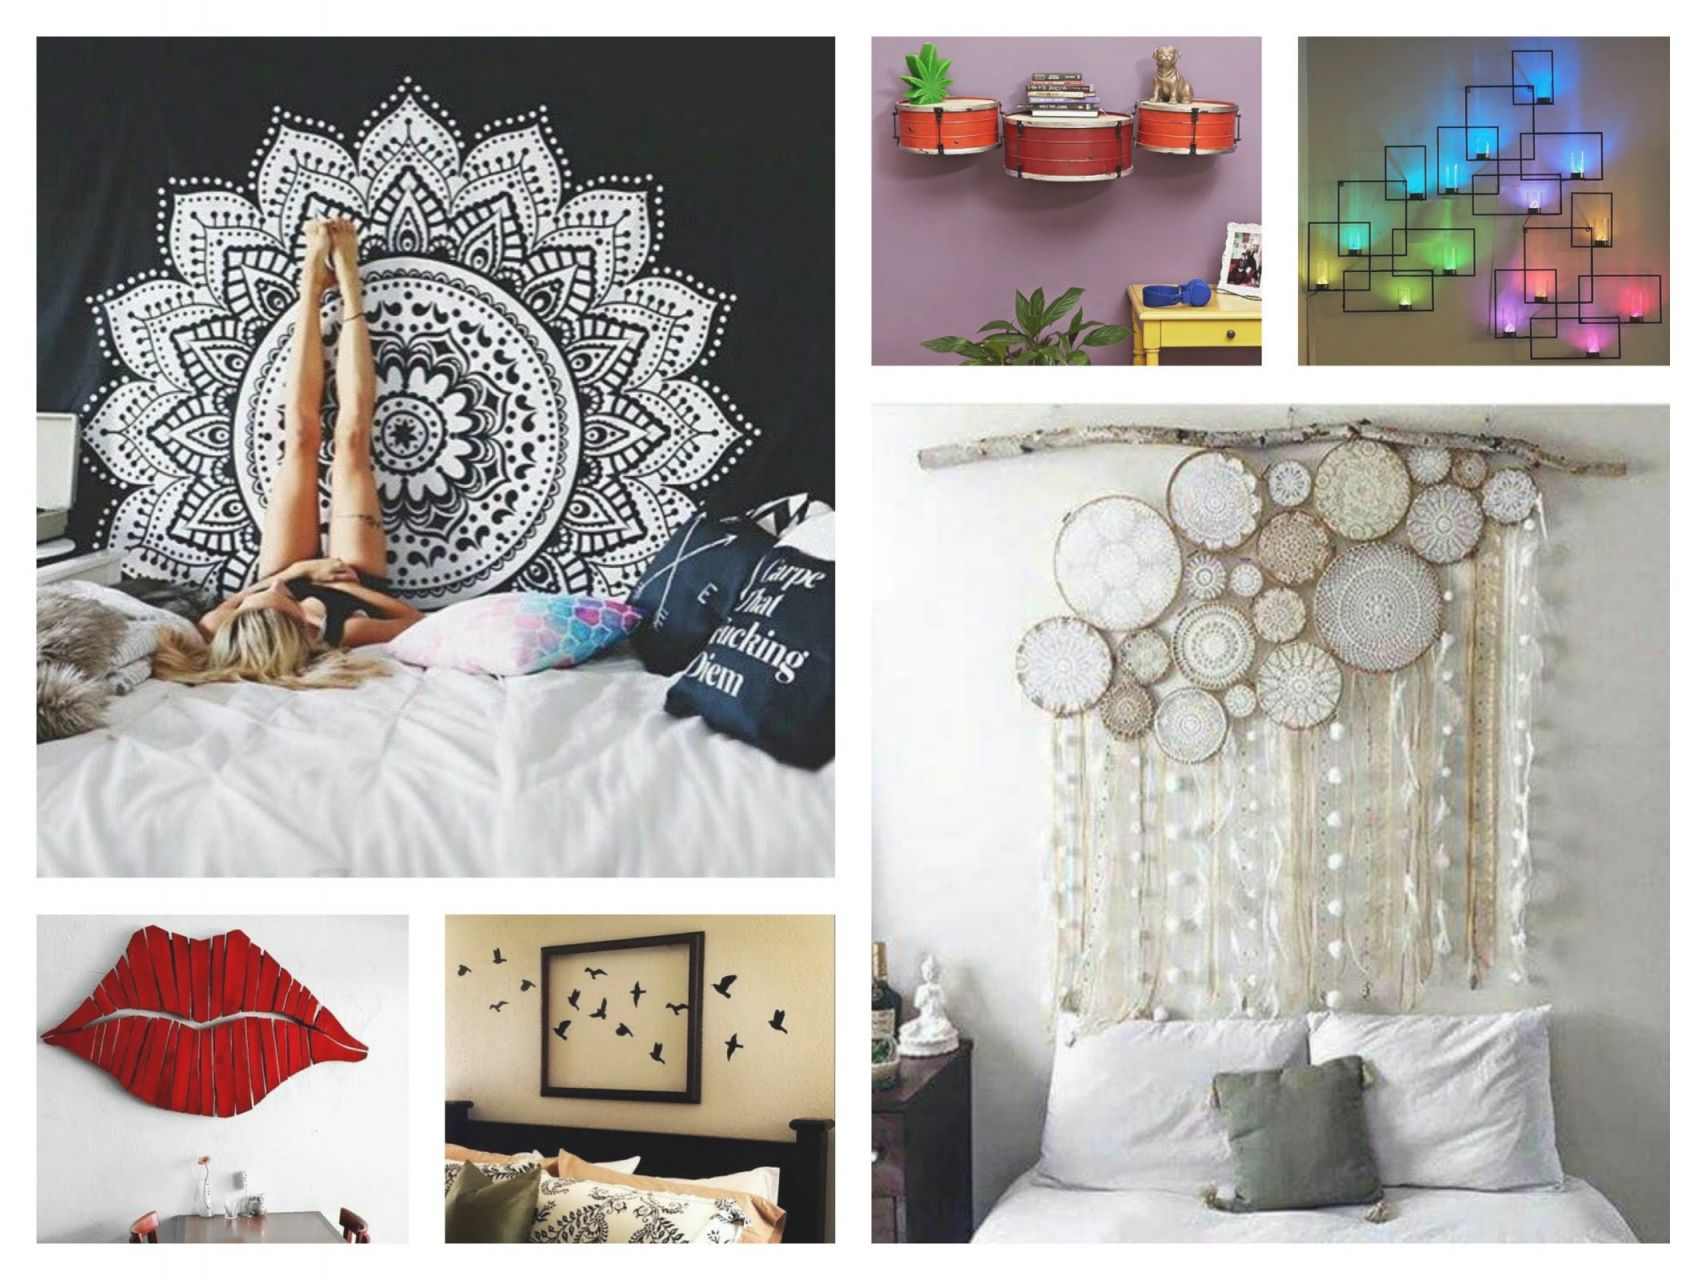 Creative Wall Decor Ideas Diy Room Decorations Youtube In within Wall Decor Ideas For Bedroom Diy